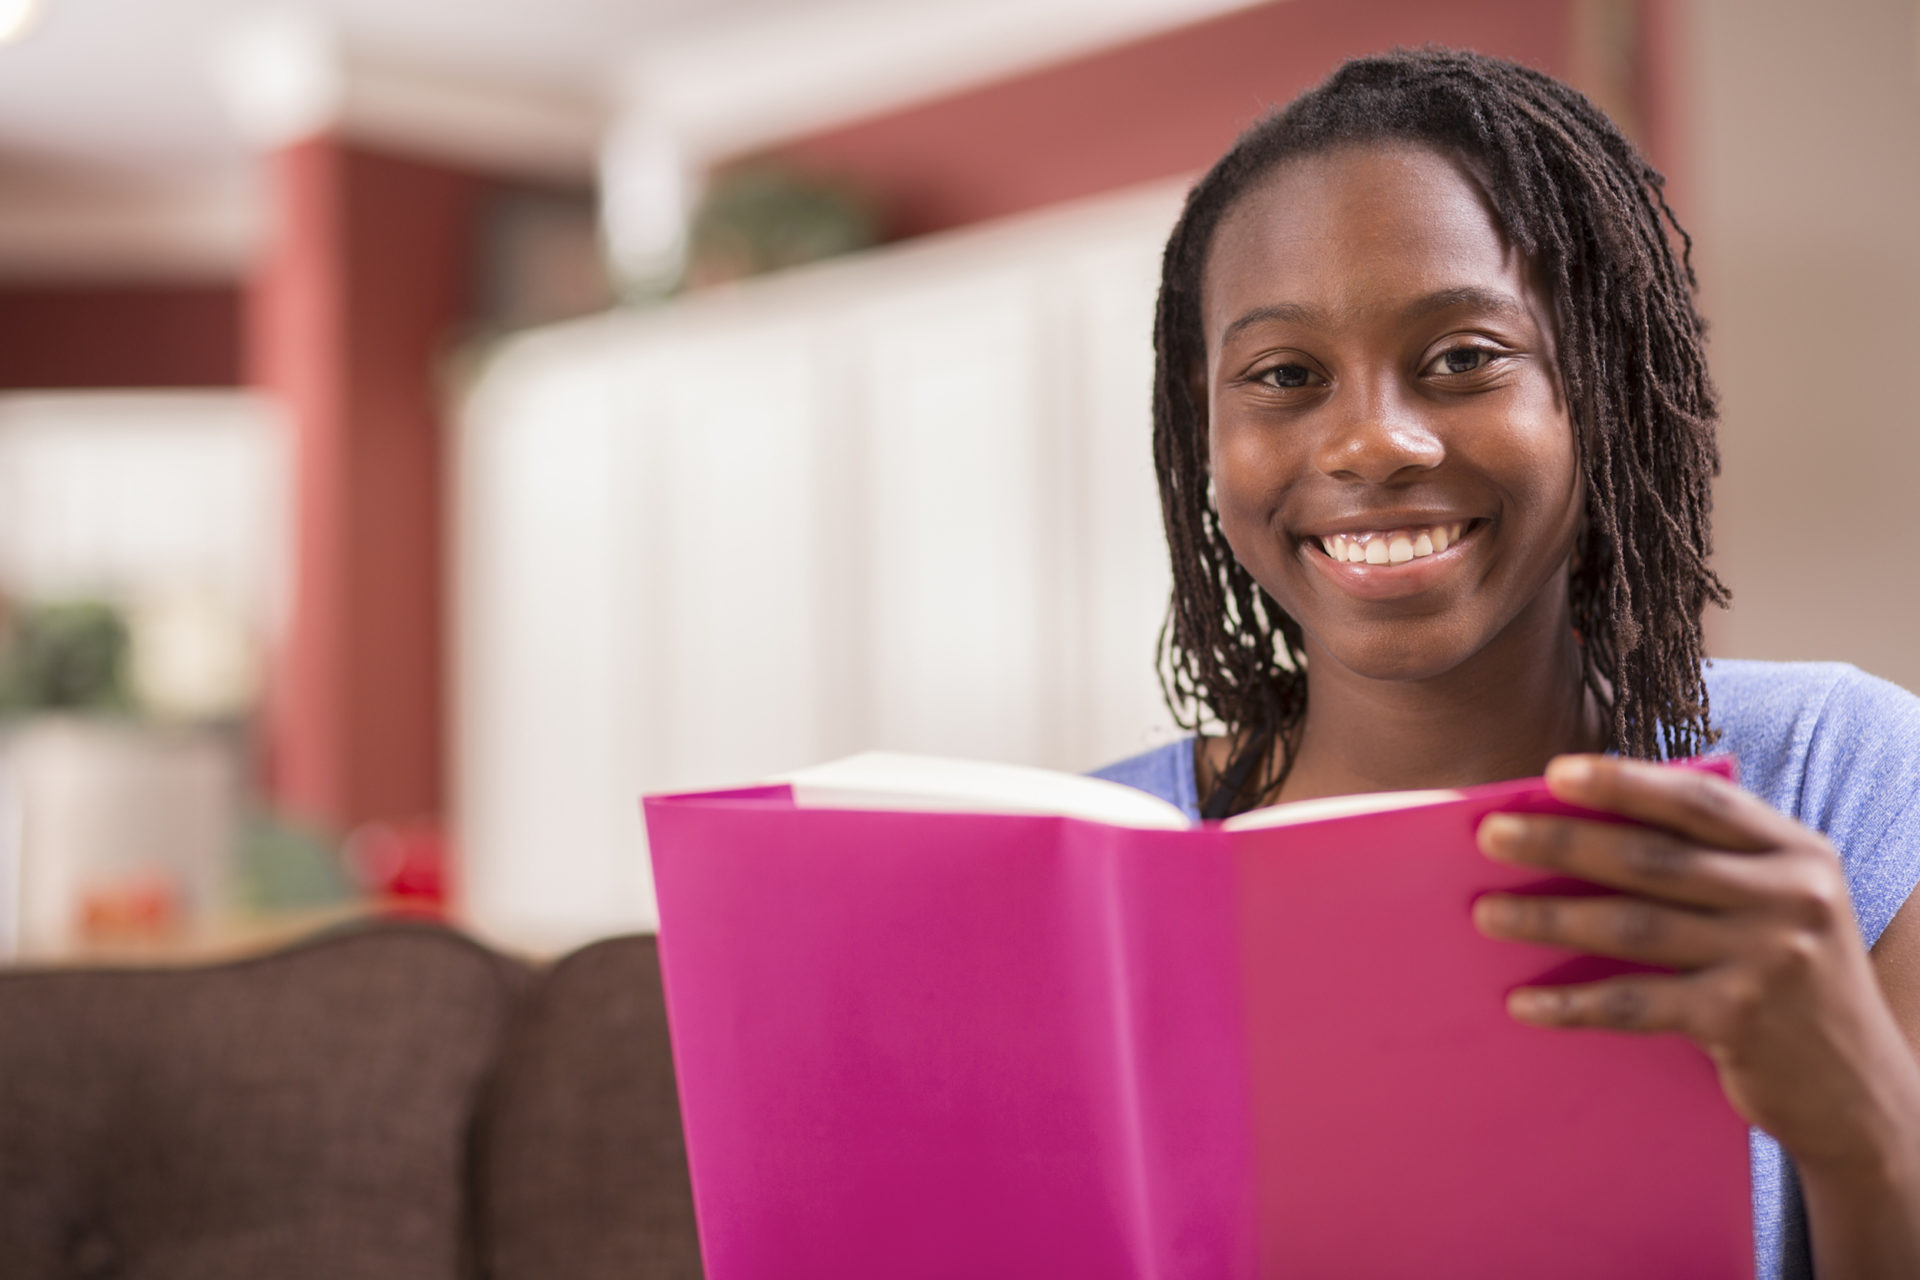 Adolescent Black girl reading a book